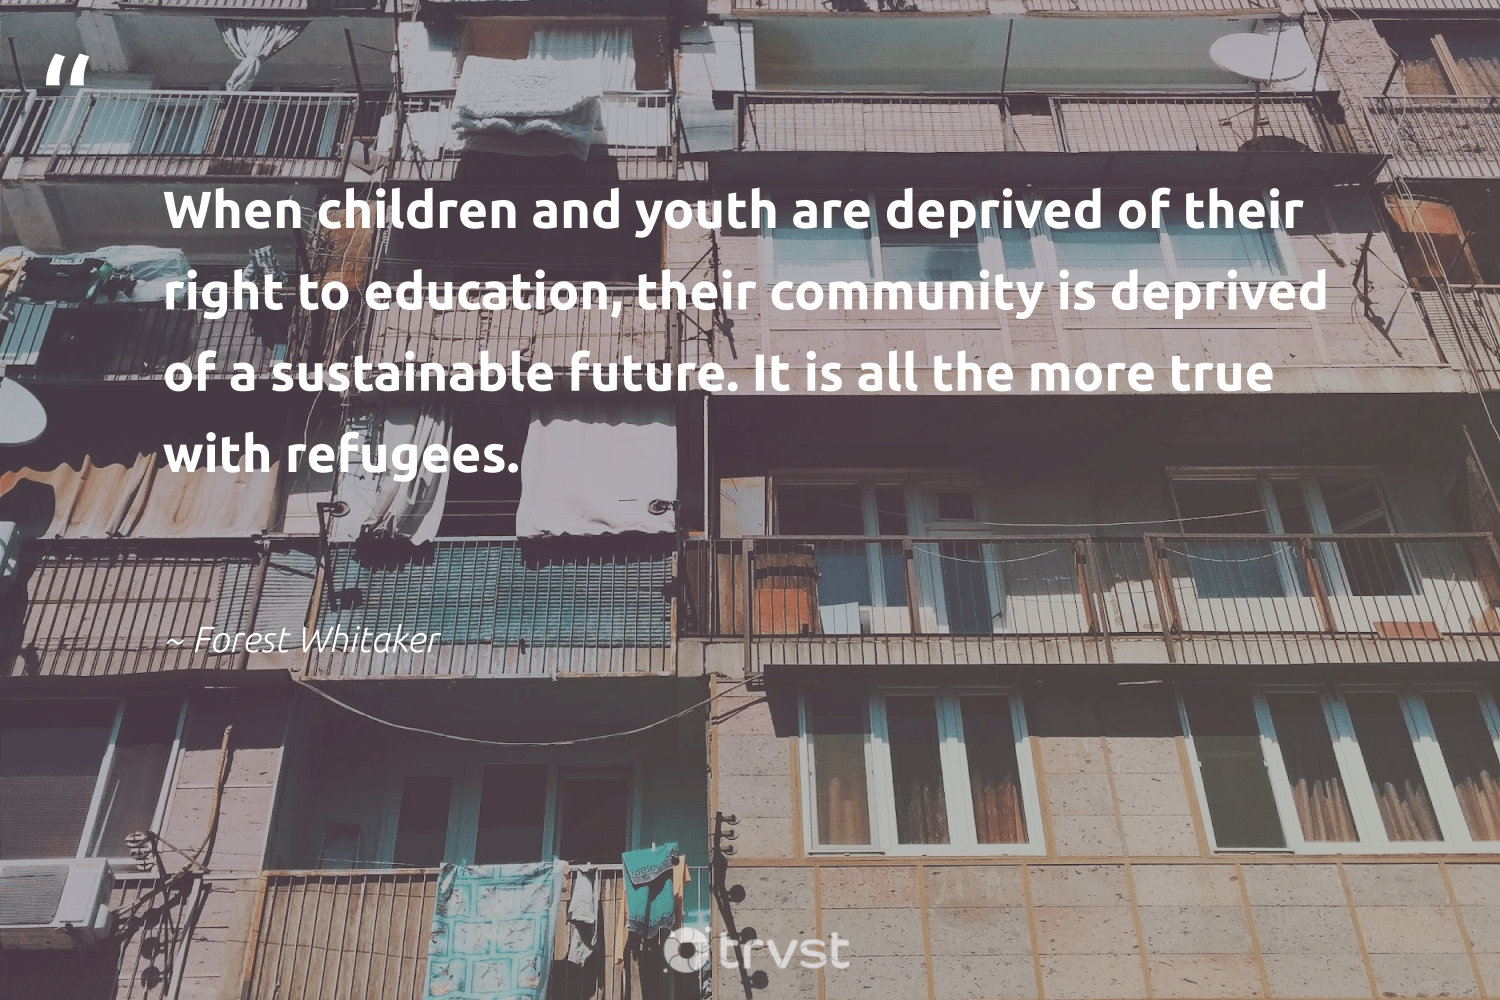 """""""When children and youth are deprived of their right to education, their community is deprived of a sustainable future. It is all the more true with refugees.""""  - Forest Whitaker #trvst #quotes #refugees #sustainable #education #children #refugeeswelcome #equalopportunity #equalrights #collectiveaction #refugee #sustainablefutures"""